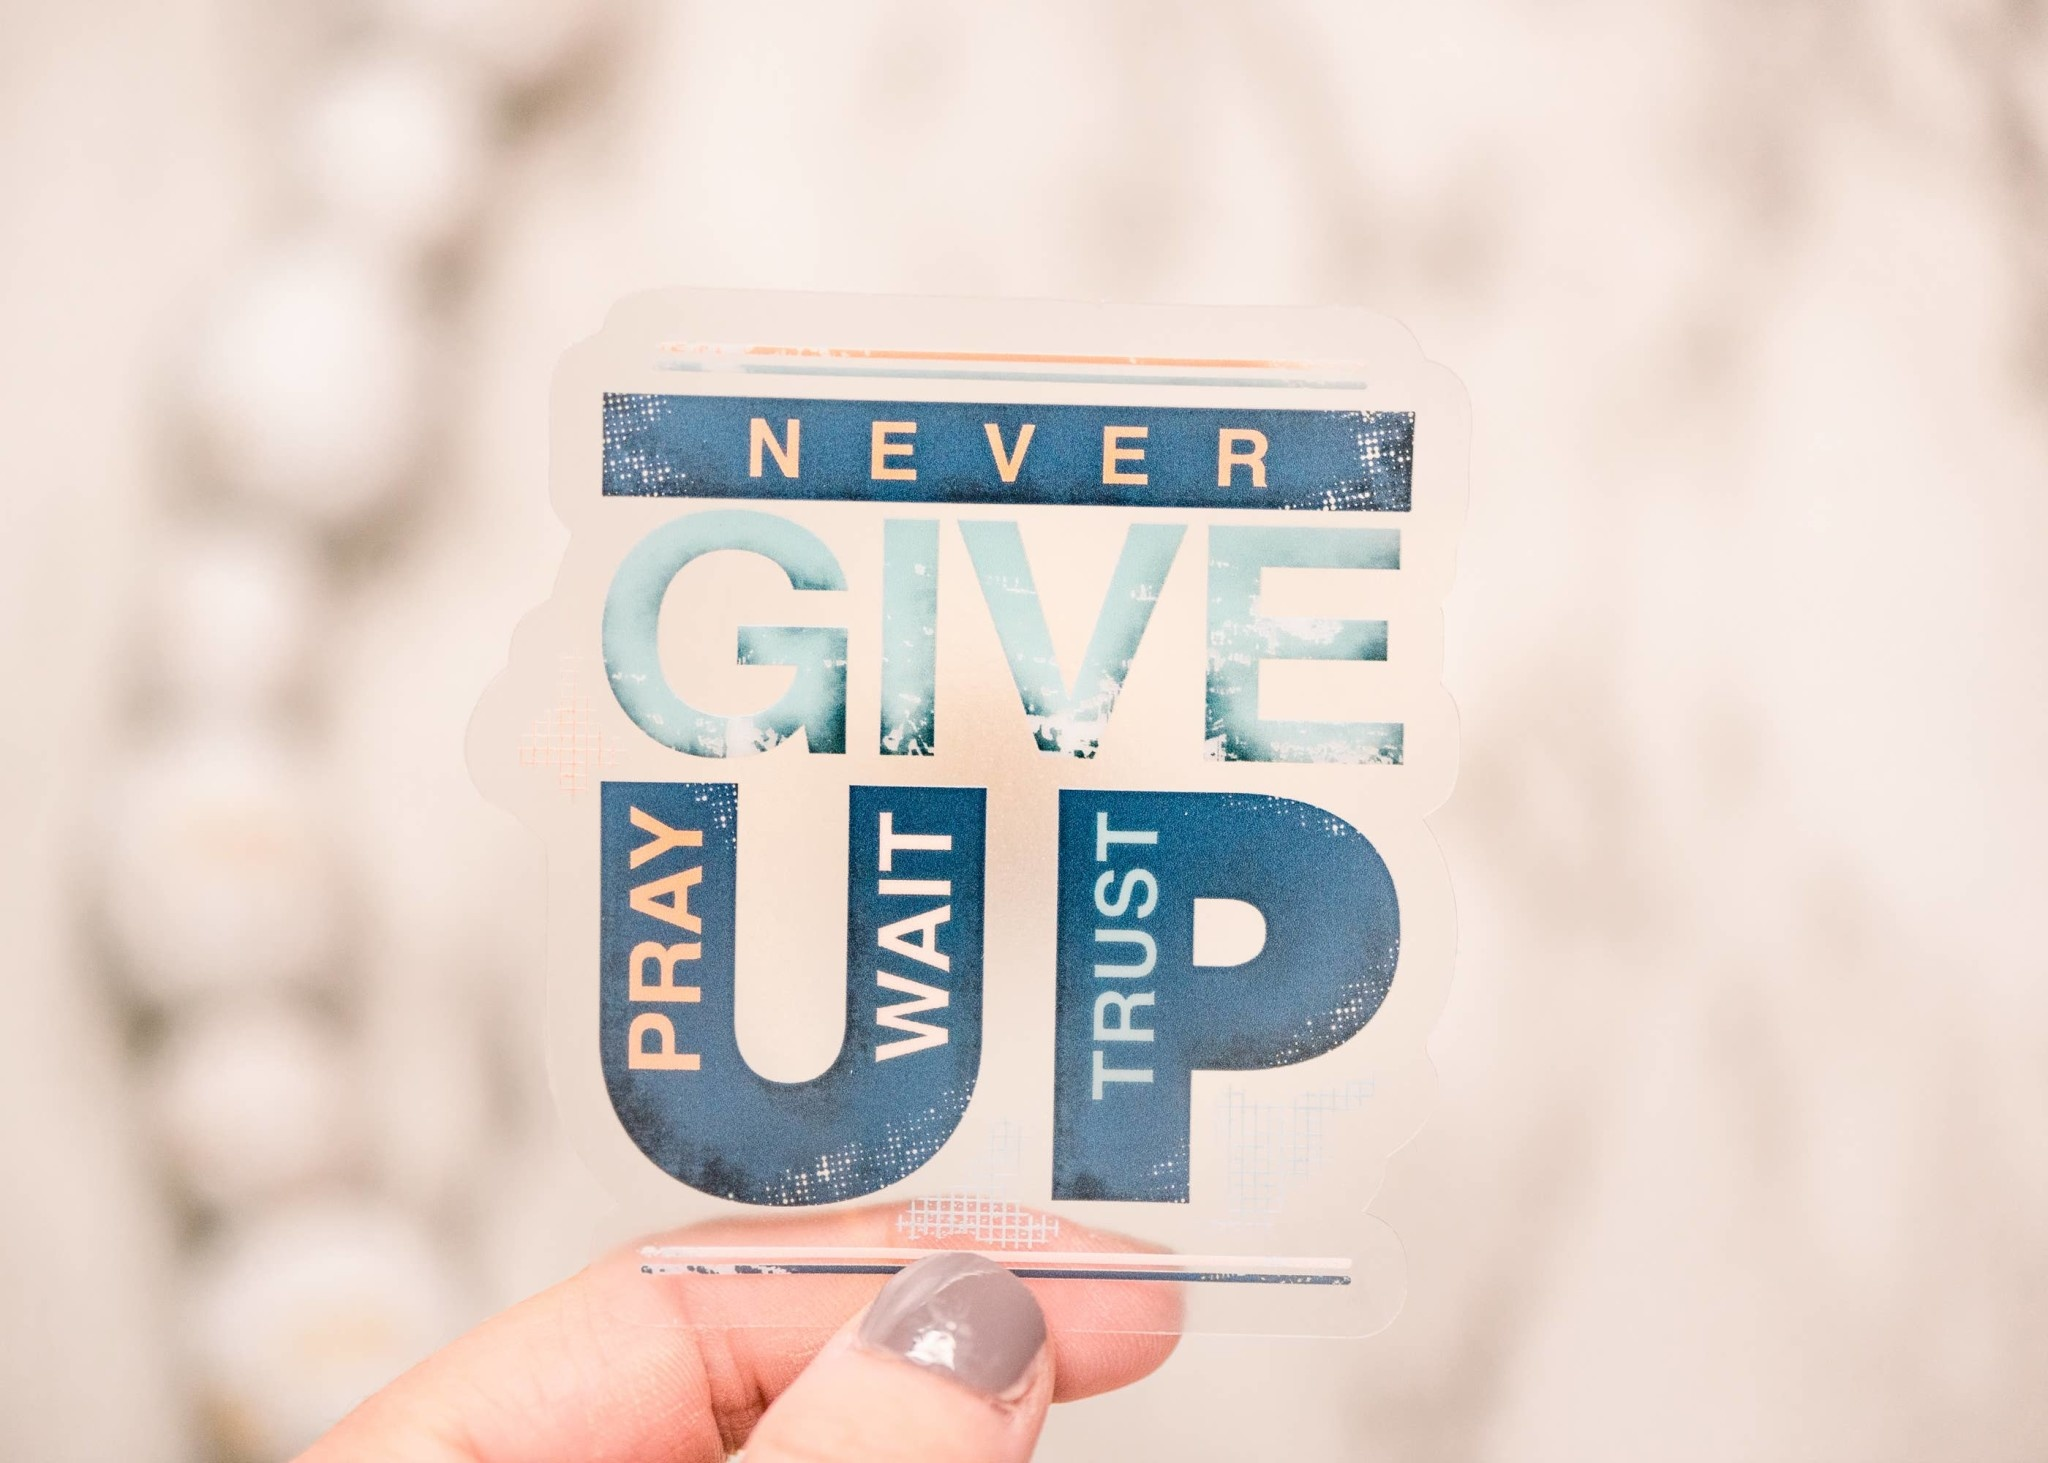 Faire: Savannah and James Co Never Give Up Clear, Vinyl Sticker, 3x3 in.